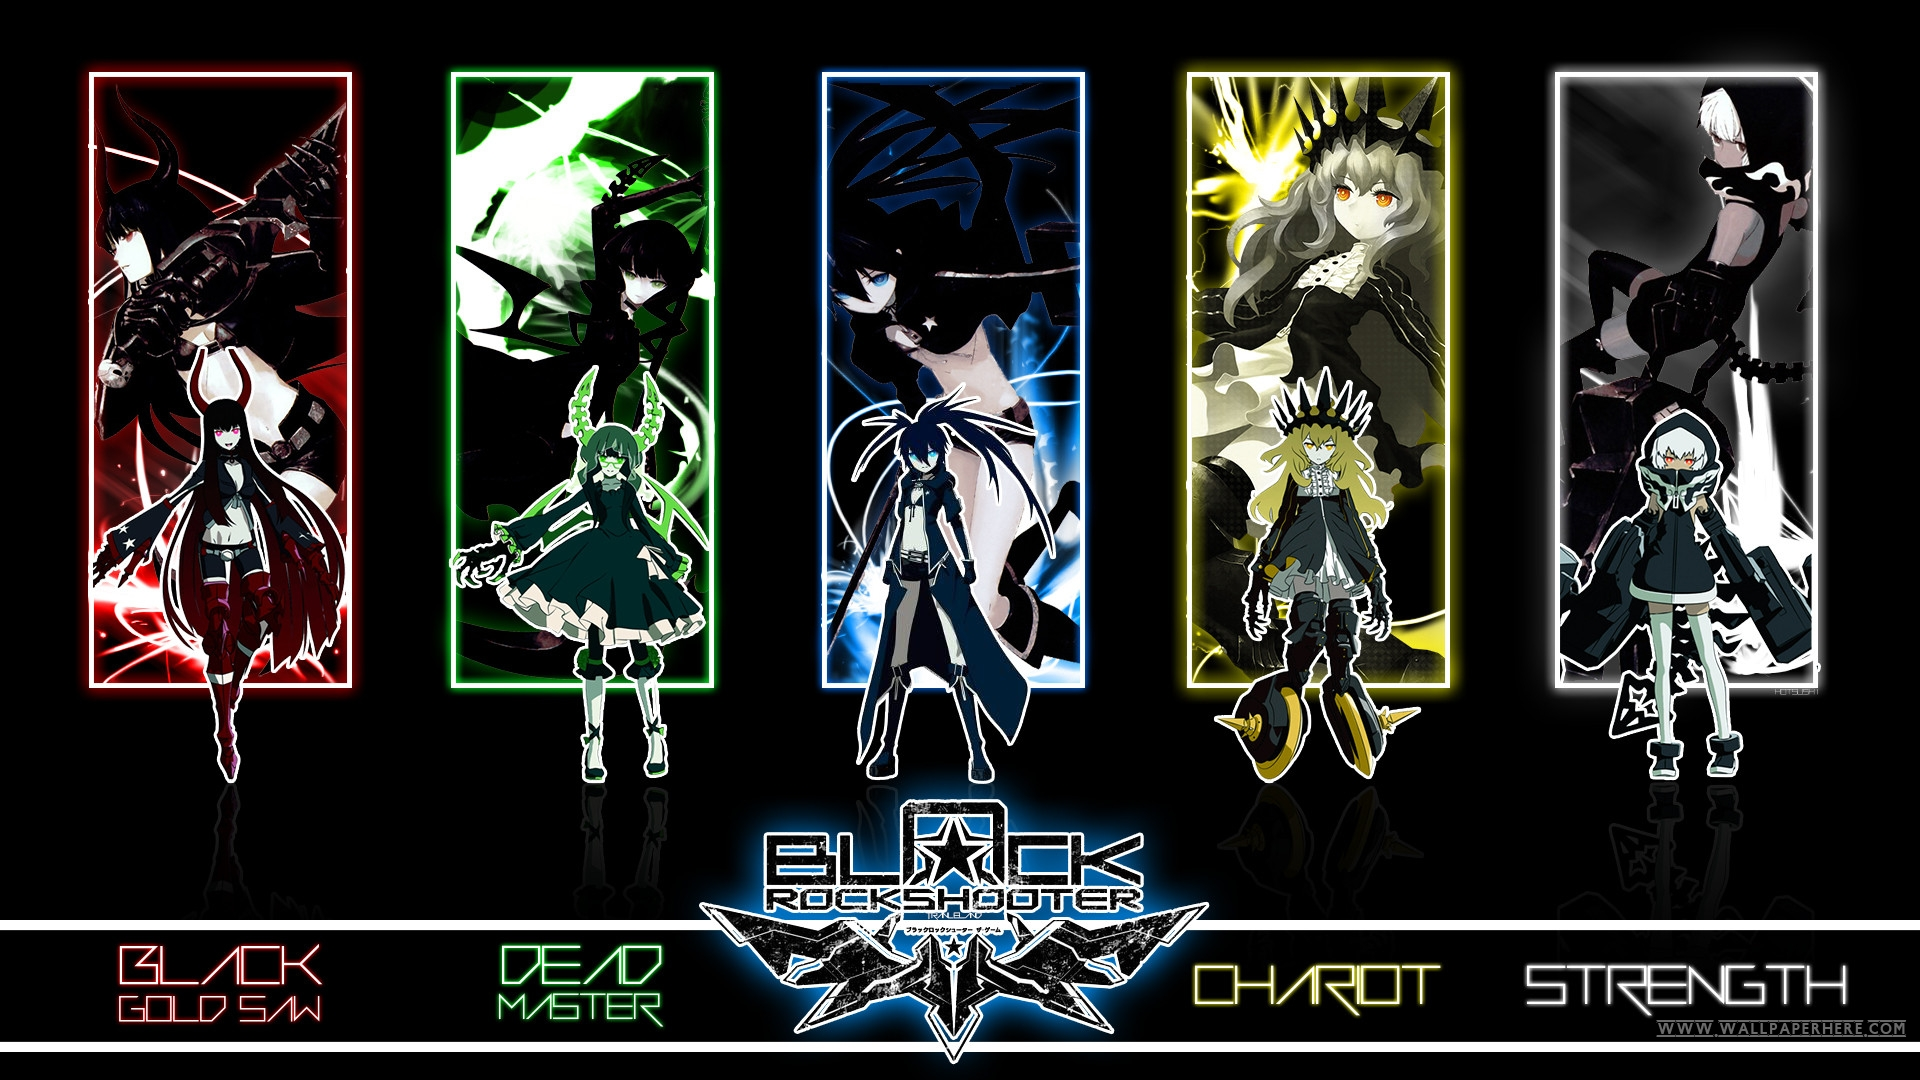 black☆rock shooter - huke - hd wallpaper #1499545 - zerochan anime